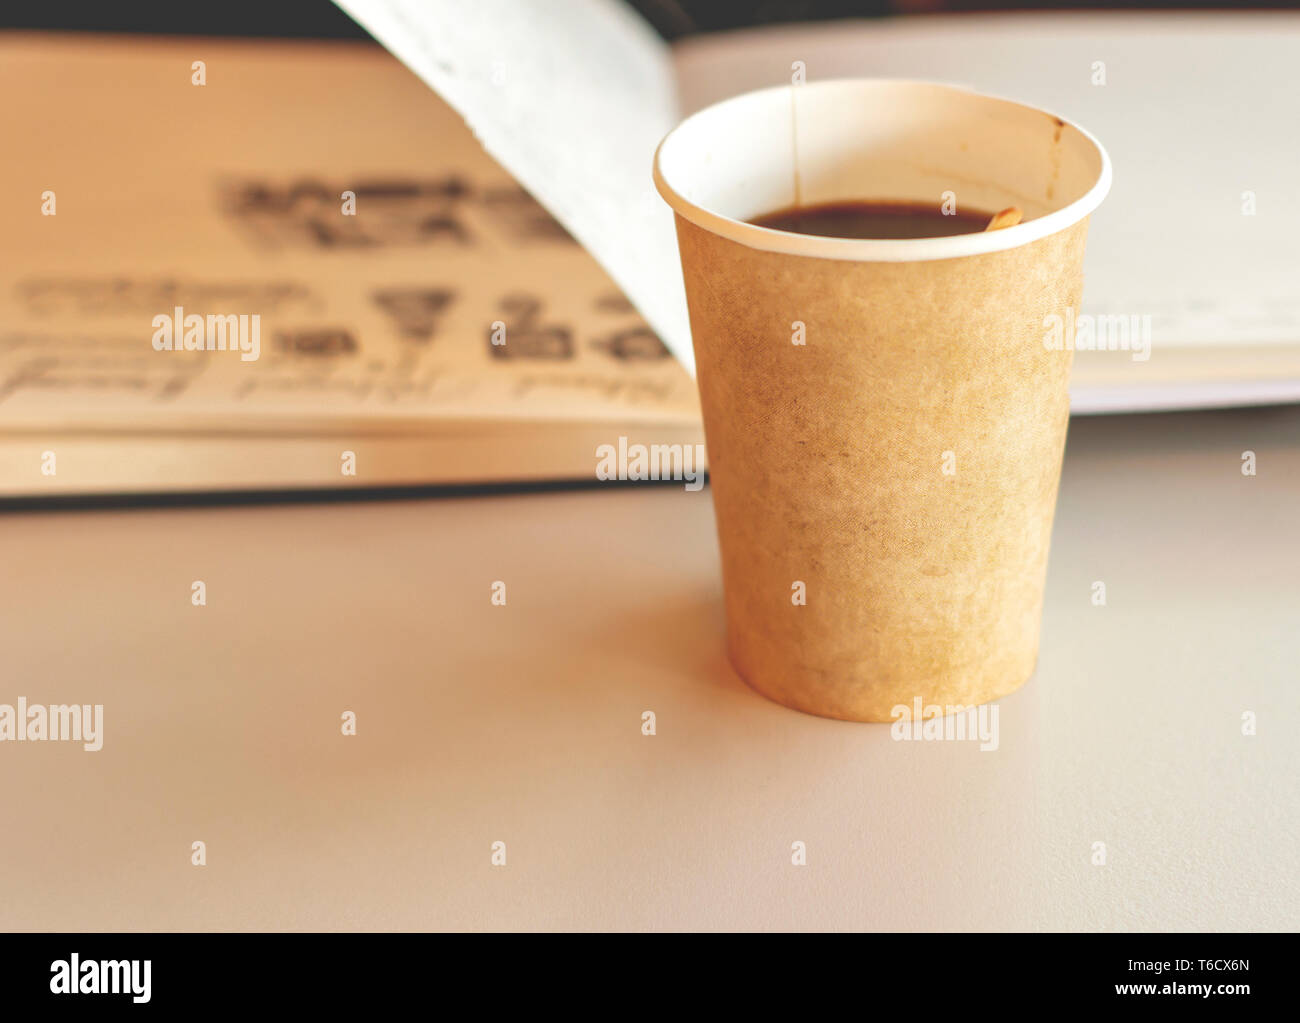 Coffee in a recyclable paper disposable glass with an open notebook in background. Relaxing break and environmental safeguard - Stock Image